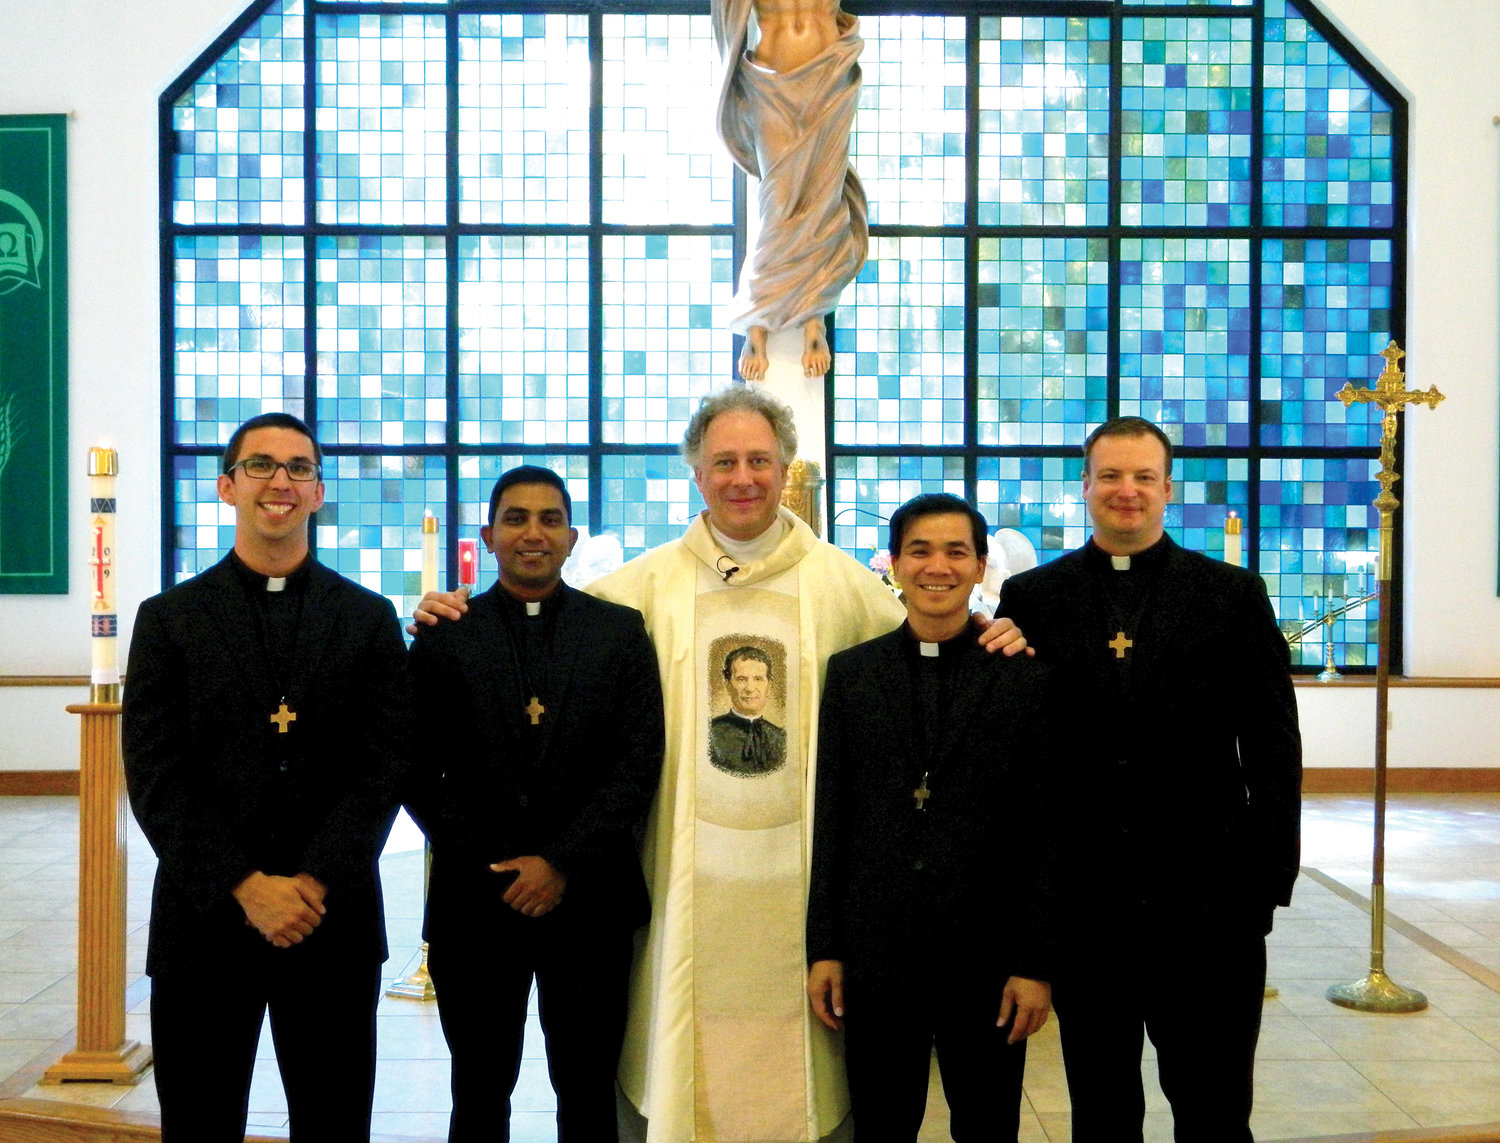 Father Timothy Zak, S.D.B., Salesians of Don Bosco provincial of the Province of Canada and the eastern United States, joins the four Salesians who professed final vows Aug. 17. They are, from left, Brother Leonard Carlino, S.D.B., left, Brother Sasika Lokutettige, S.D.B., Brother Ky Nguyen, S.D.B., and Brother Craig Spence, S.D.B.